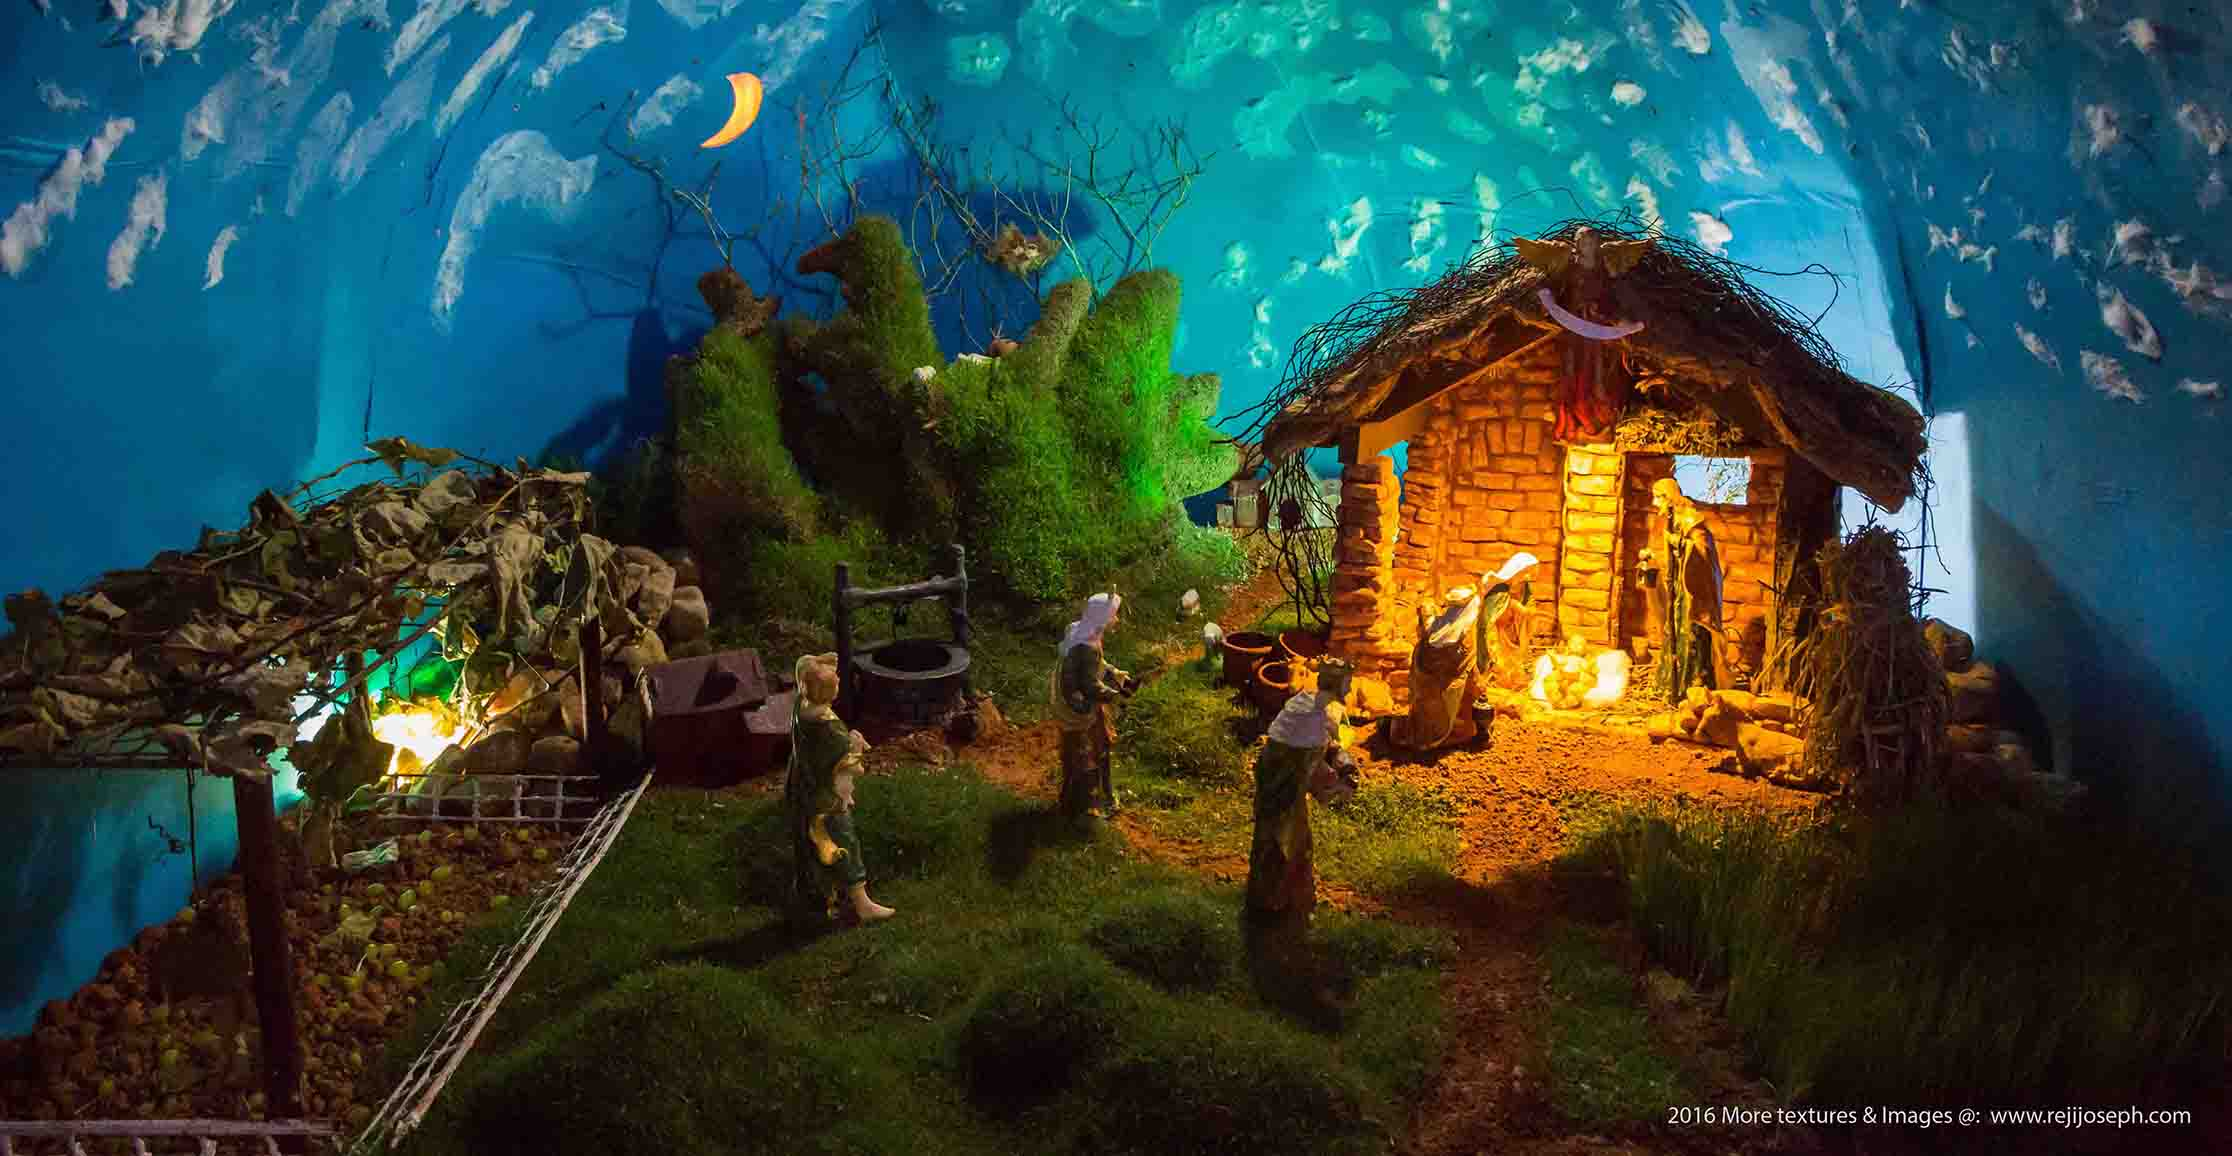 Christmas crib Pulkoodu St. George Forane Church Edappally 00010